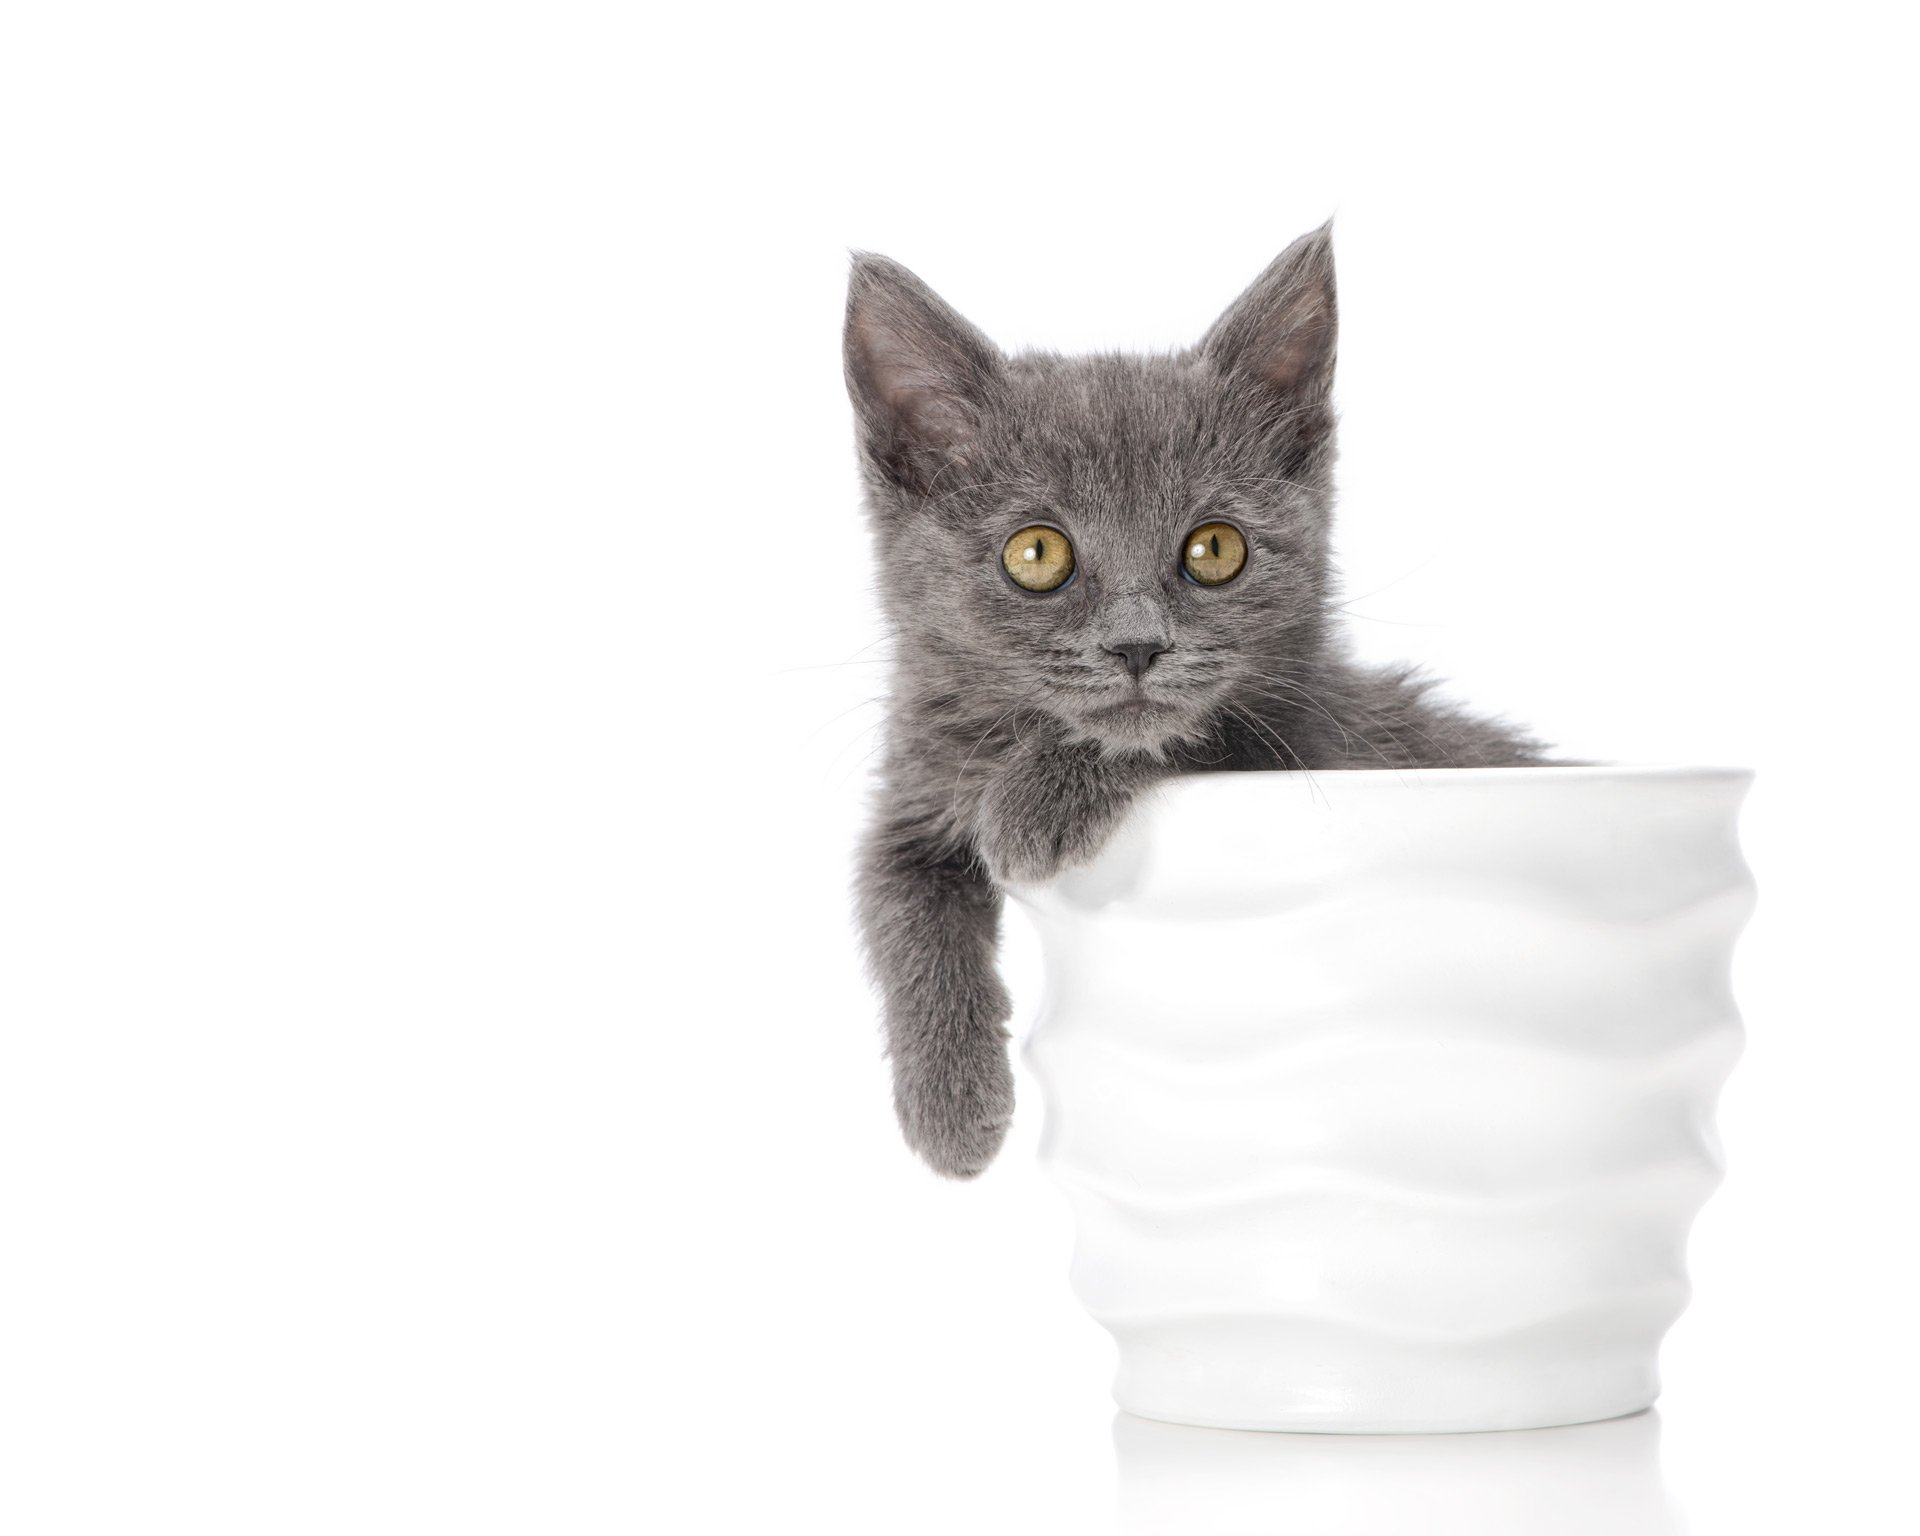 cat-grey-kitten-in-cup